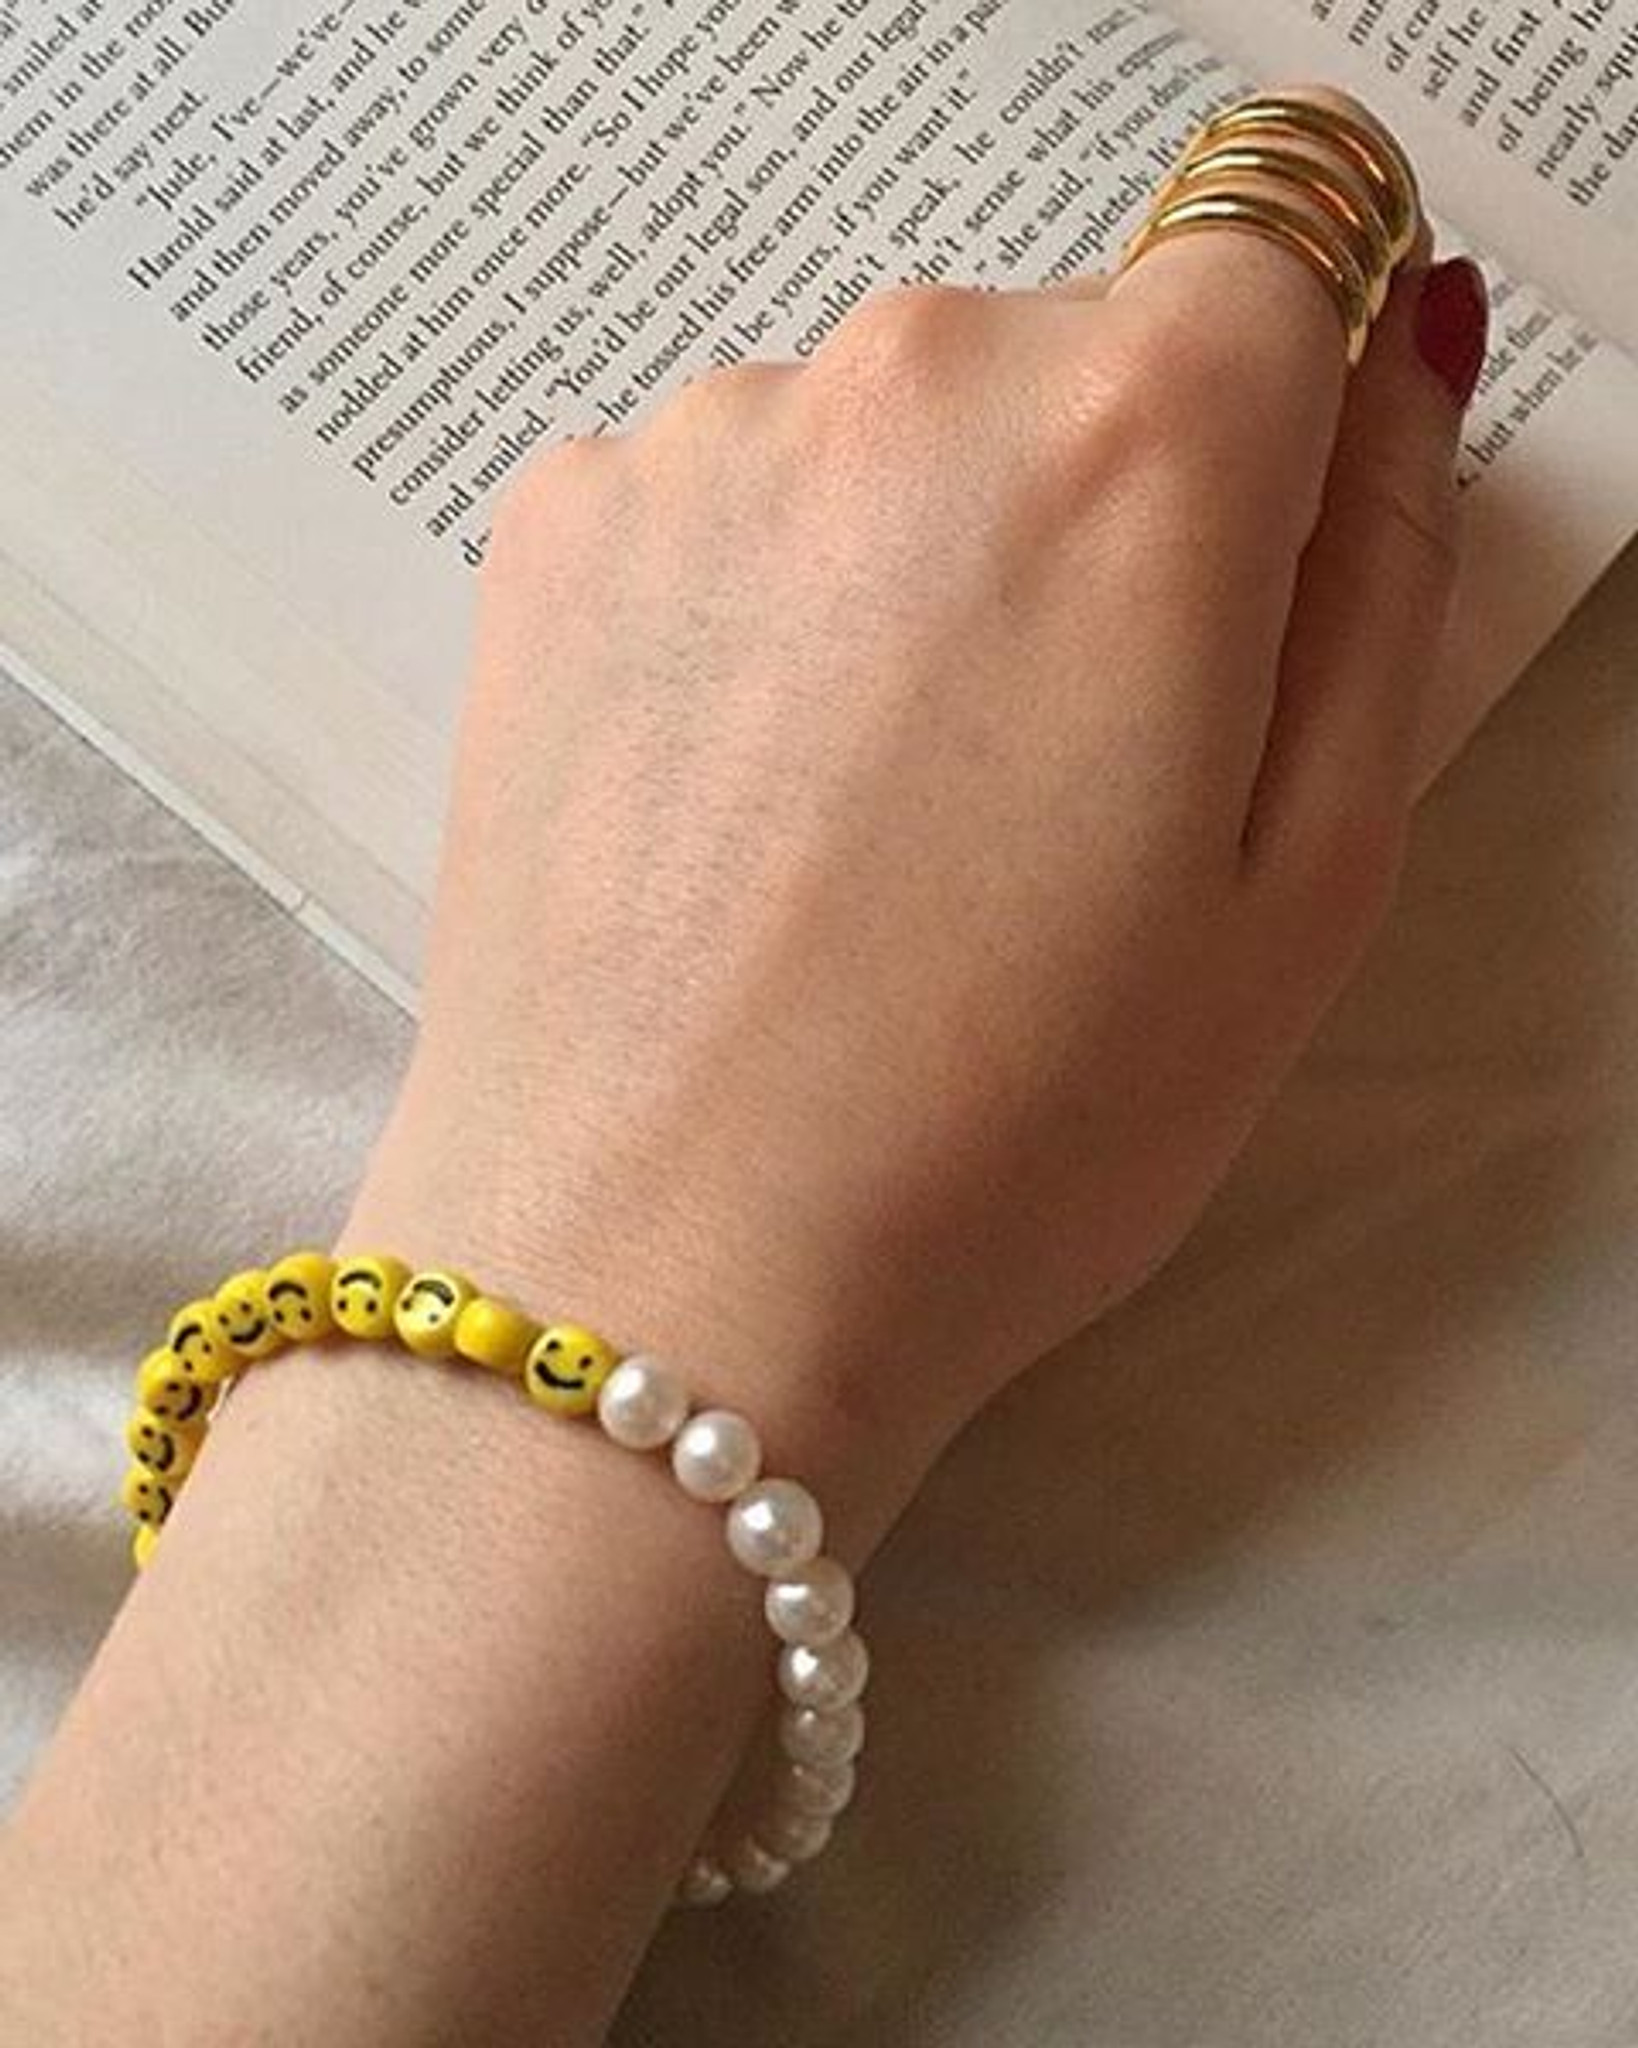 Cultured Freshwater Pearl Bracelet with Smiley Face Emoji Glass Beads by Jewelry Designer Nektar De Stagni matches any outfit.